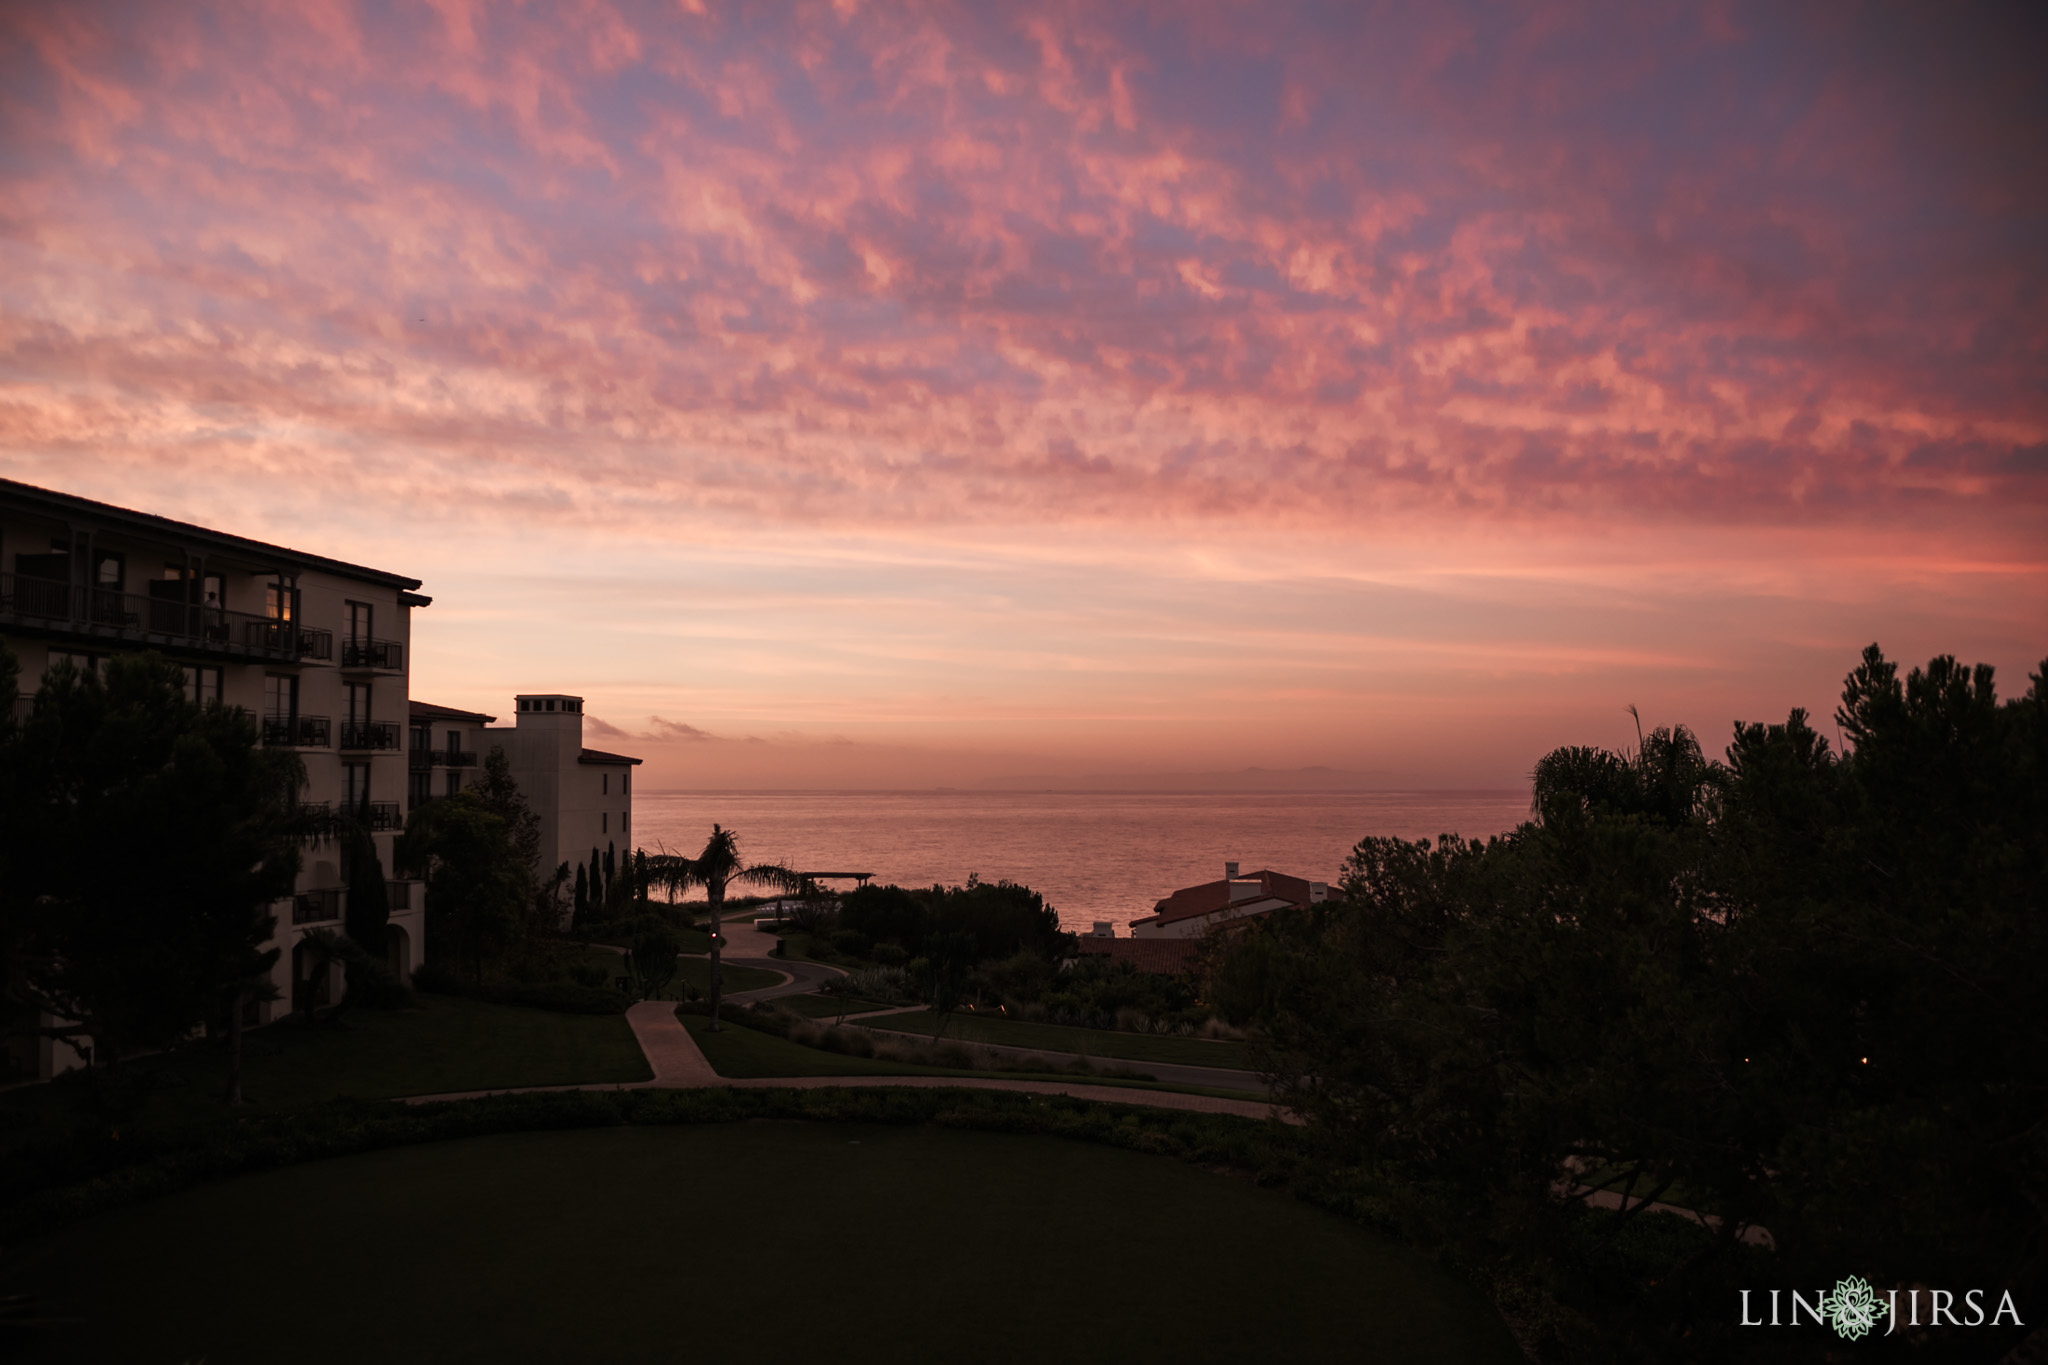 zbf sunrise terannea resort palos verdes wedding photography